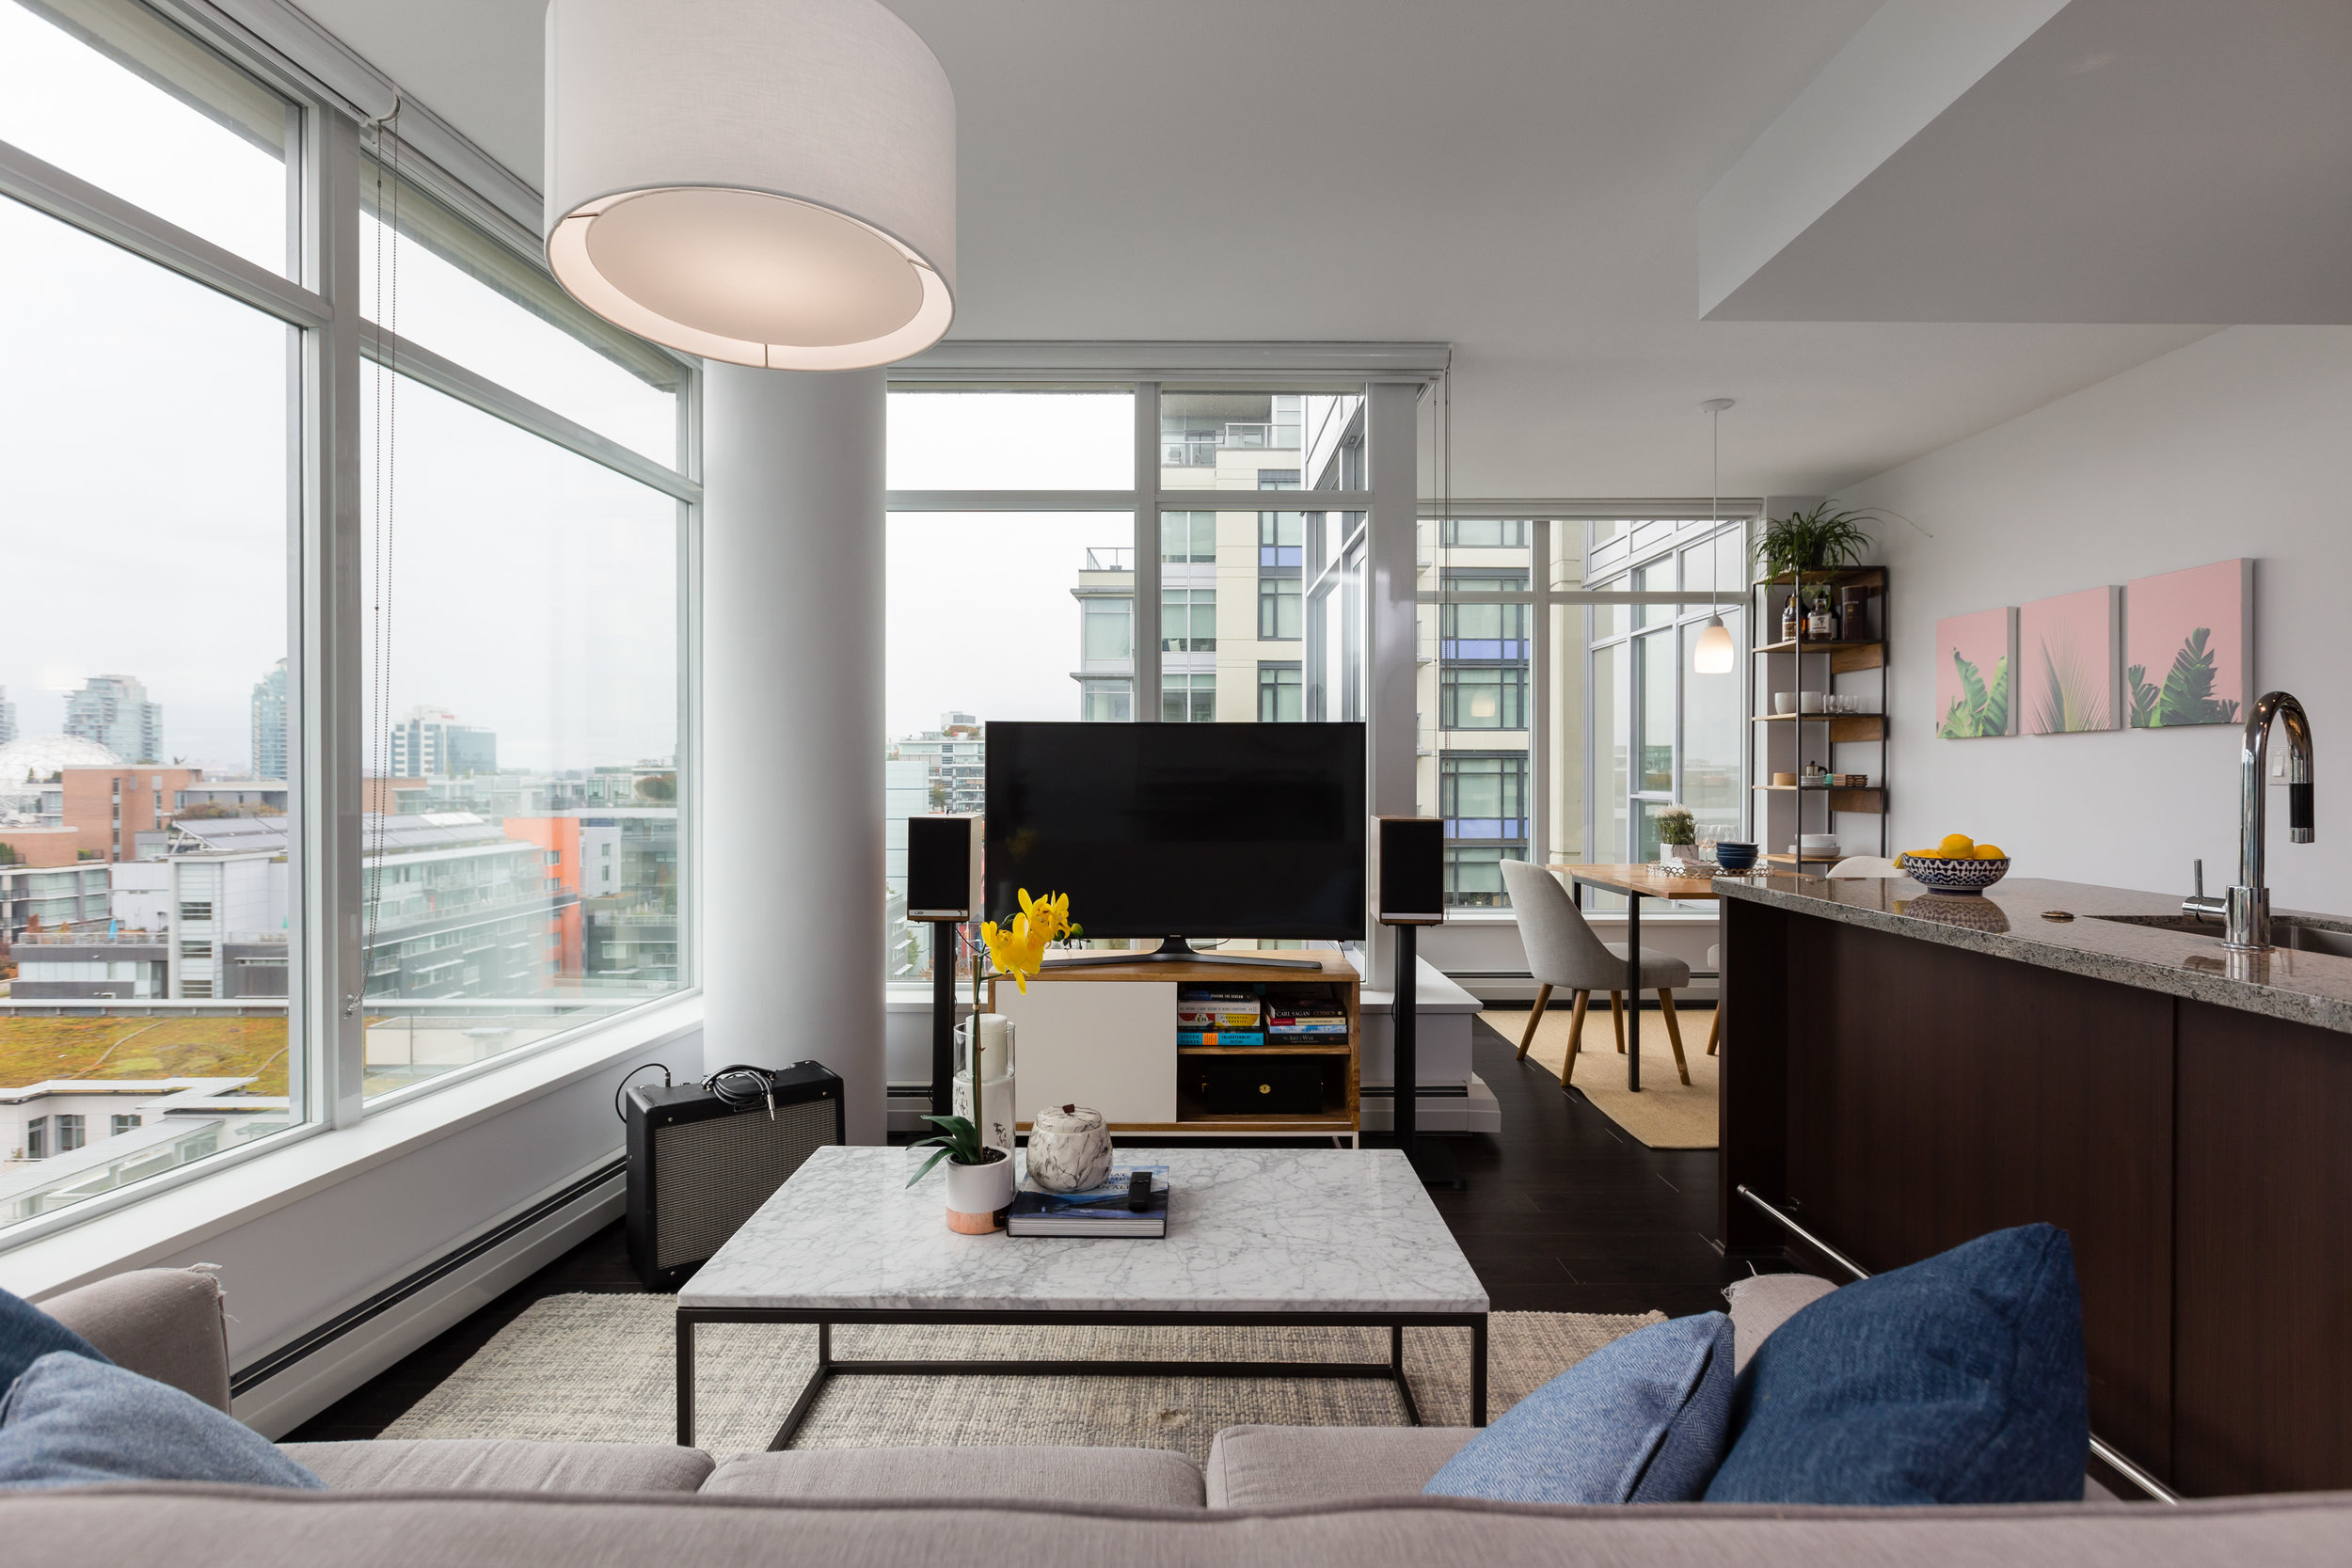 Wall Centre False Creek West - #1109-1708 Columbia Street(SOLD)$829,000 | 1 Bed +Den | 1 Bath